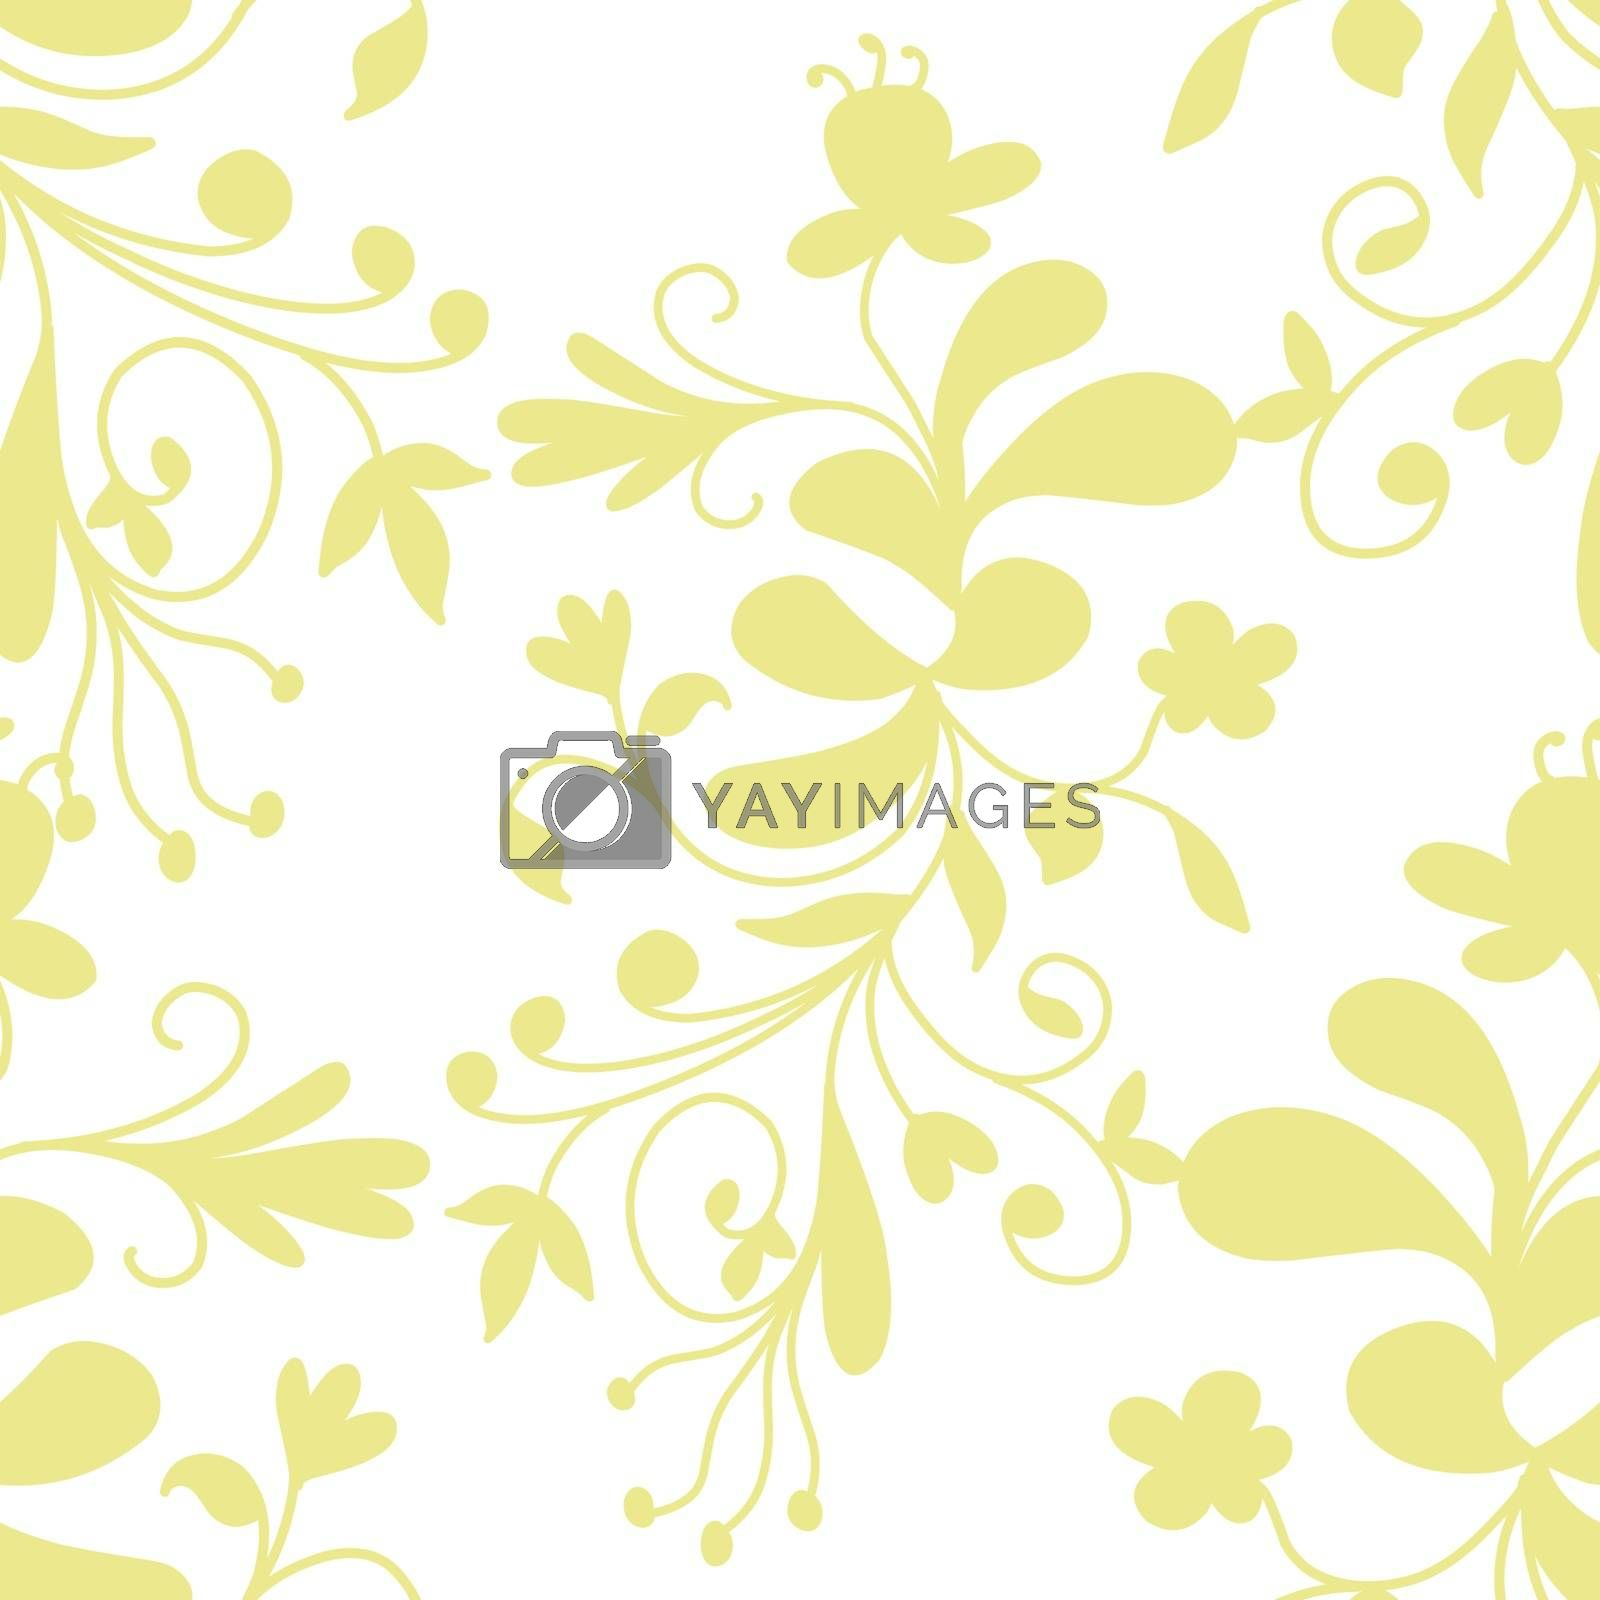 Stock Illustration Abstract Floral Seamless Pattern by brux